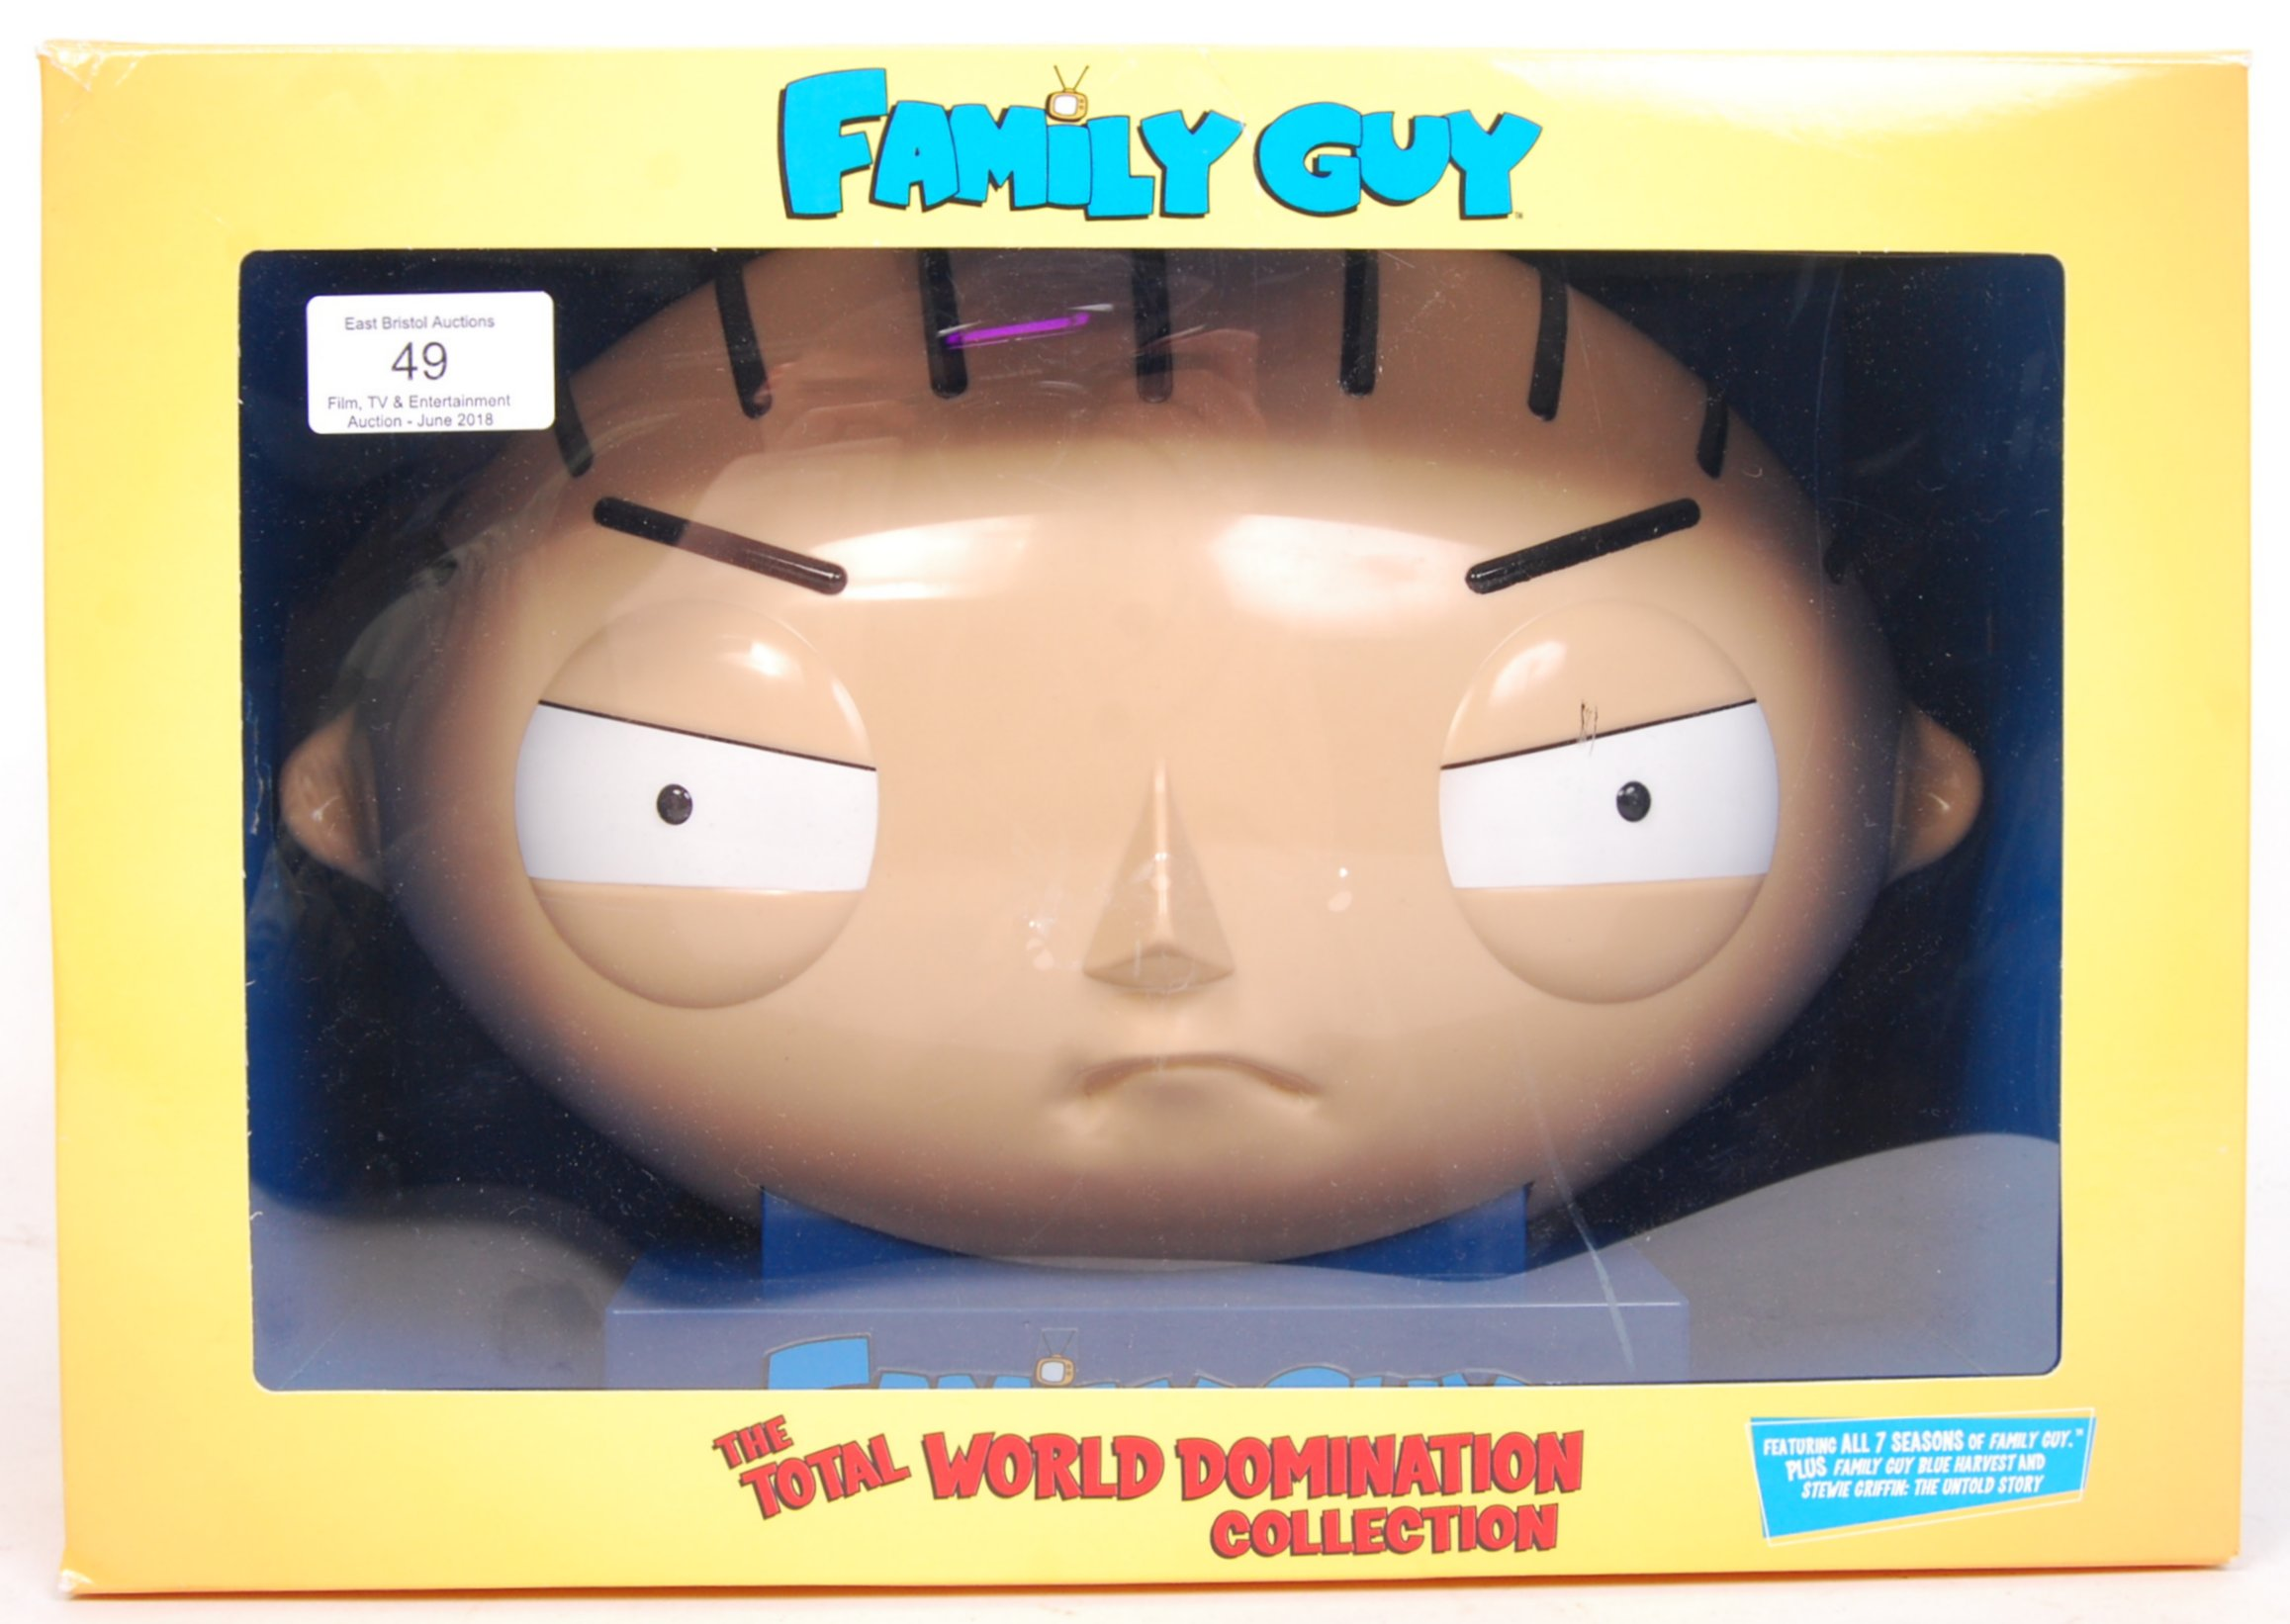 The total world domination collection